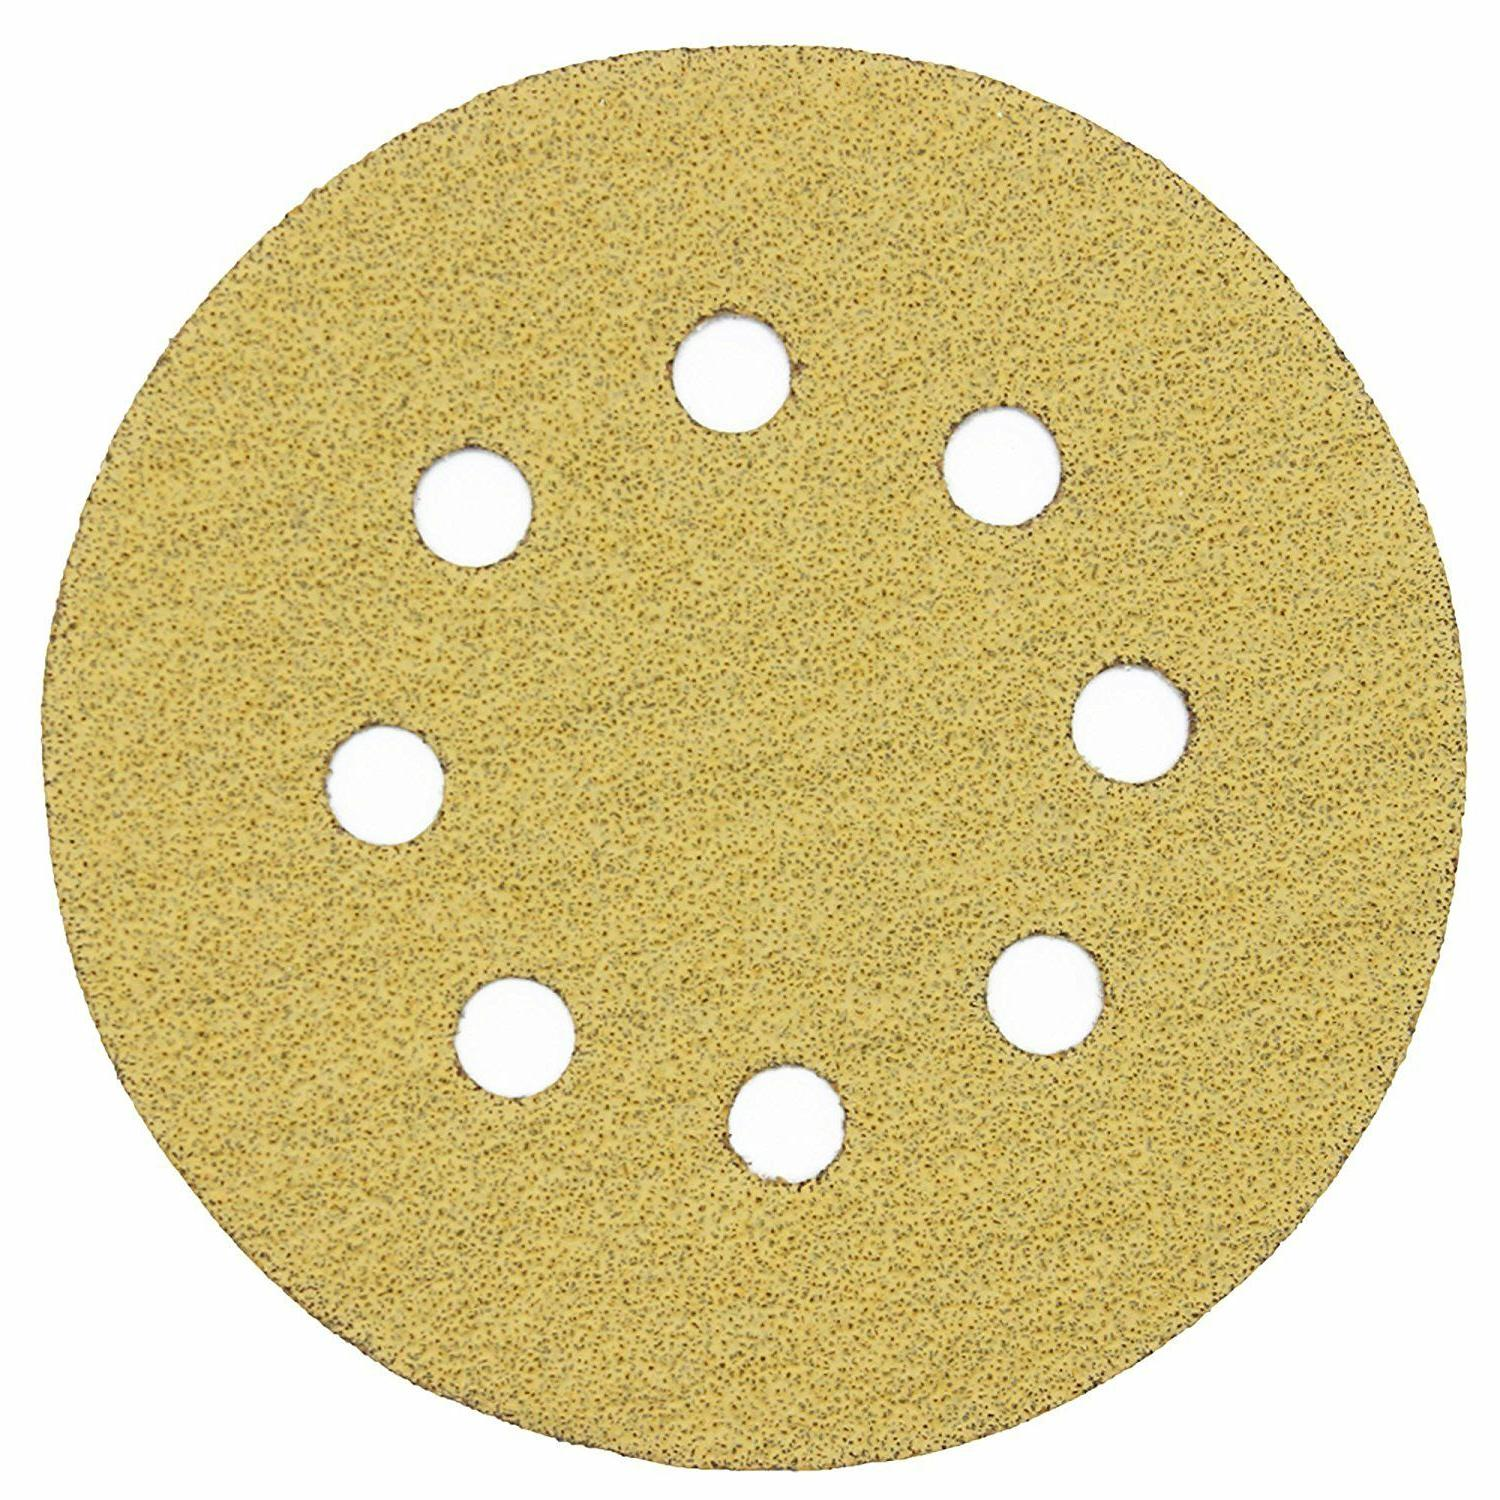 100pcs 5'' inch Grit and Sanding Sandpaper Pads